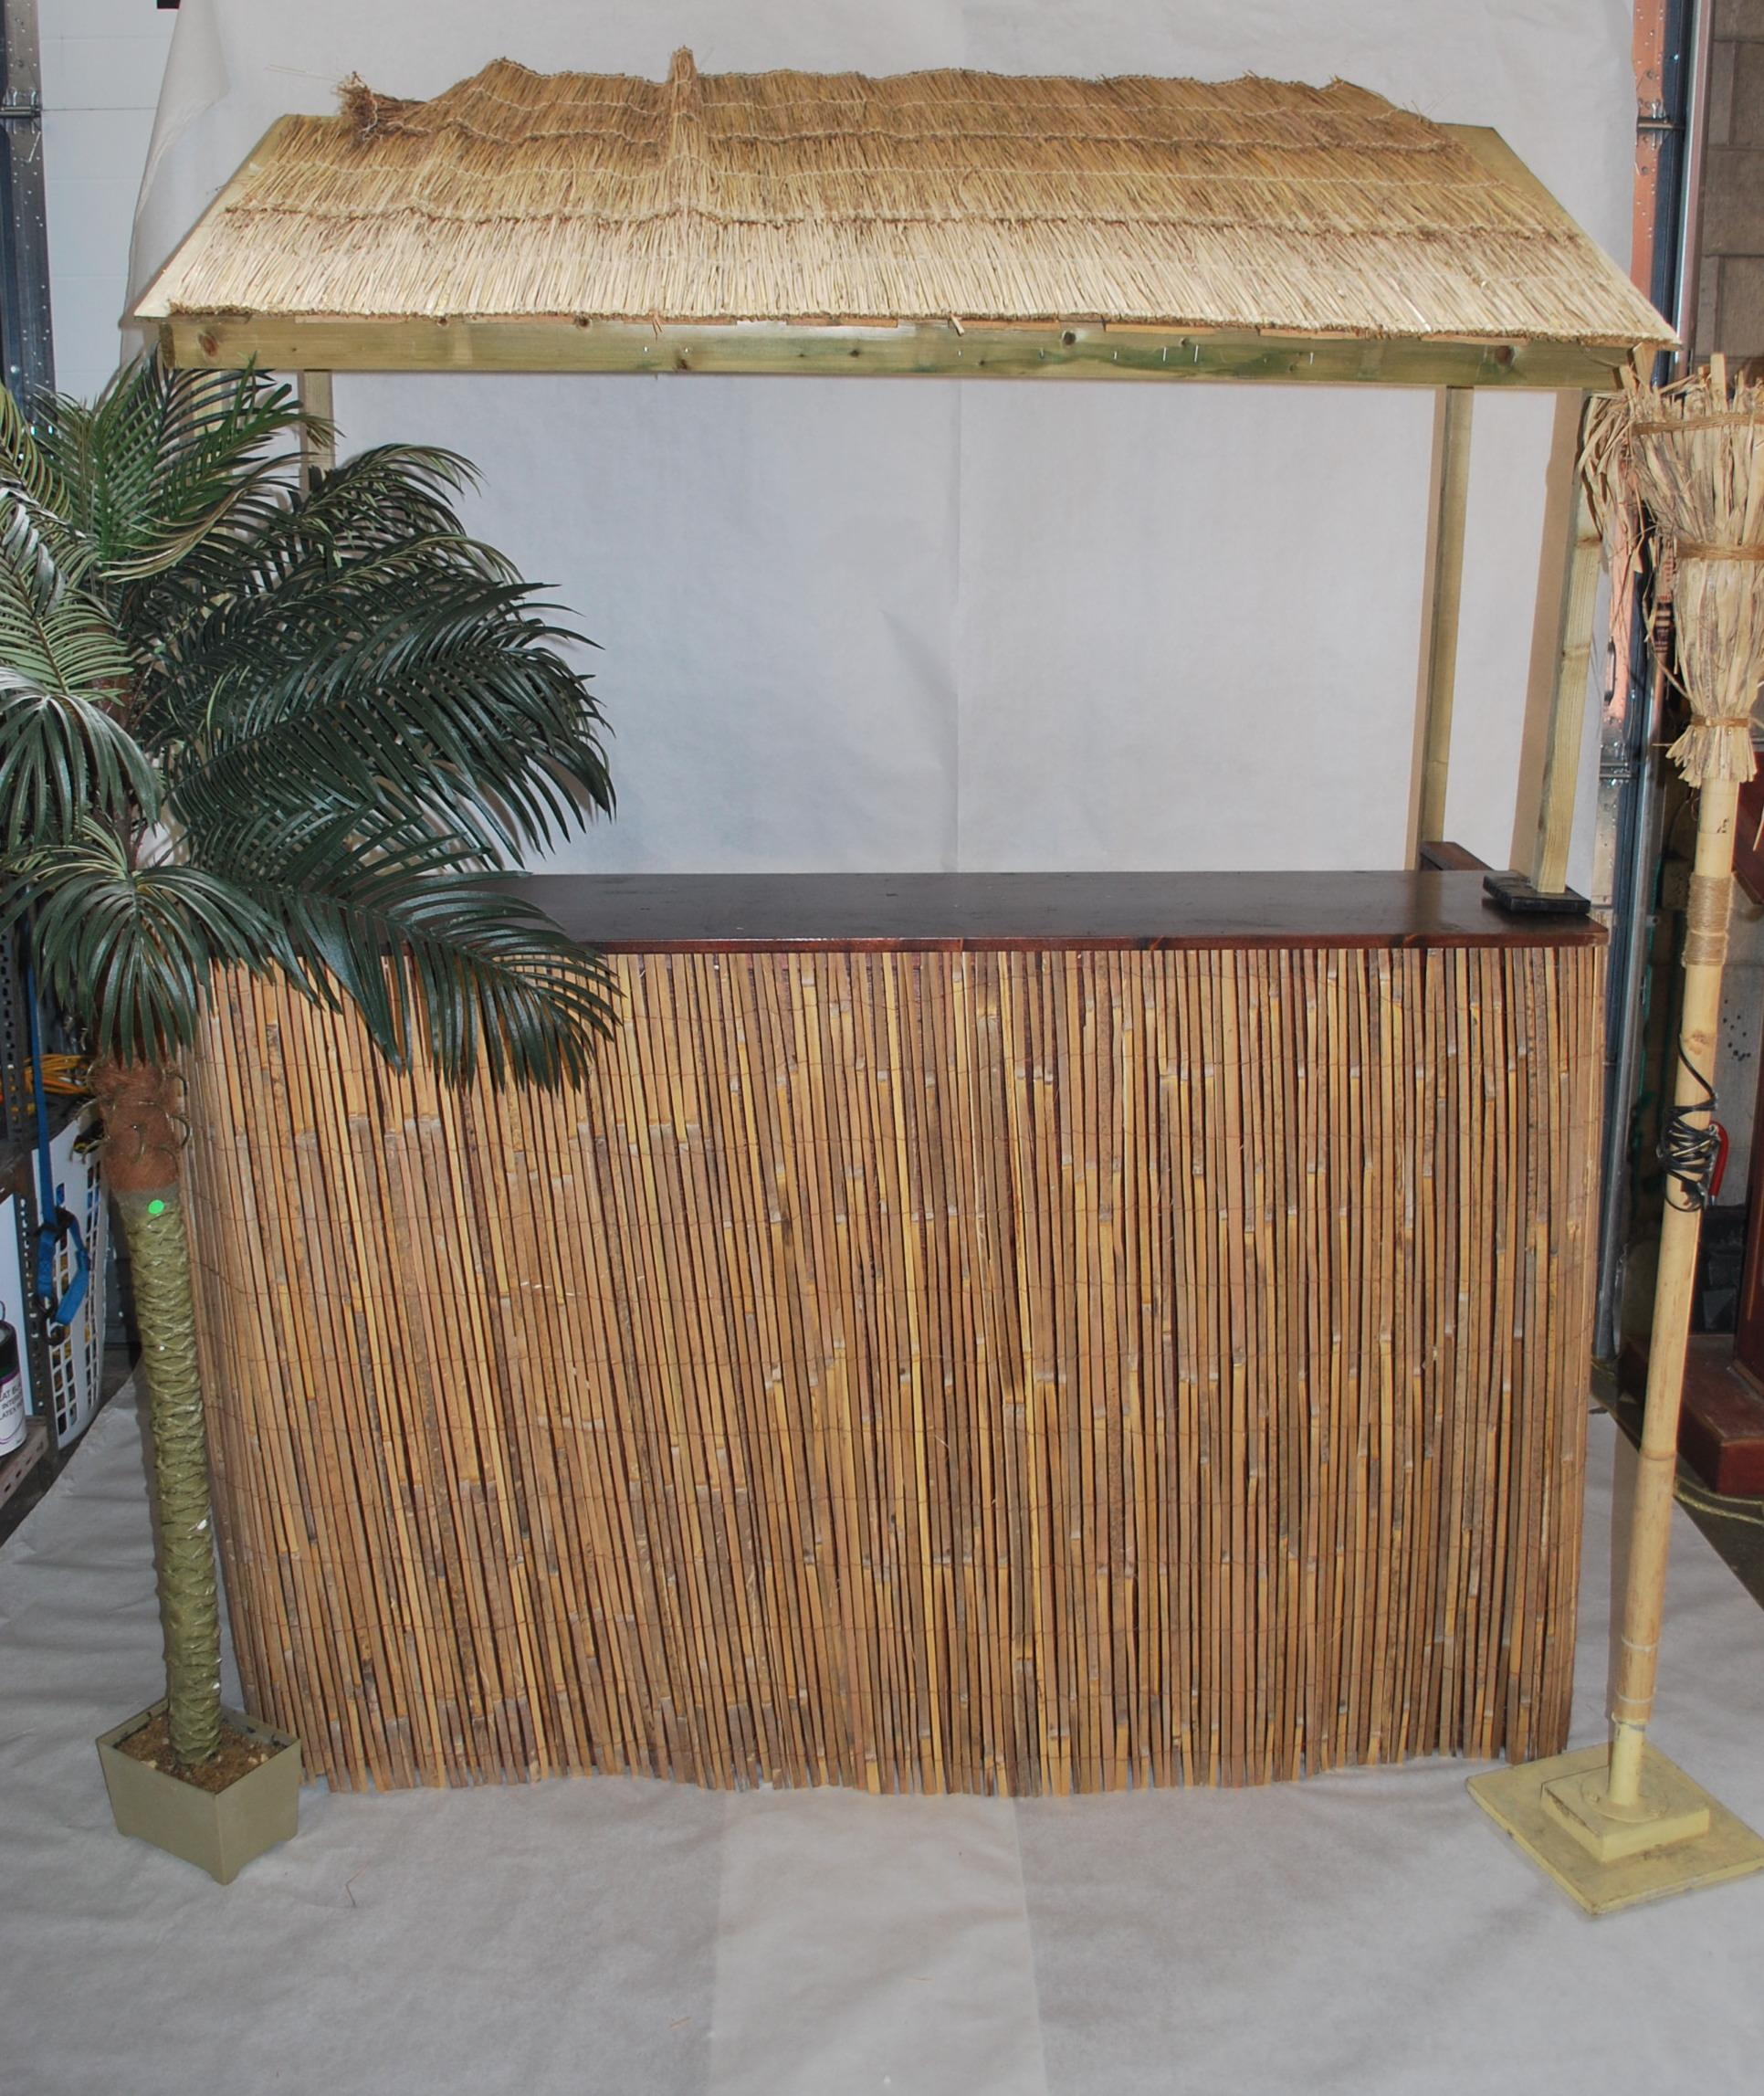 7 Ft Tiki Bar